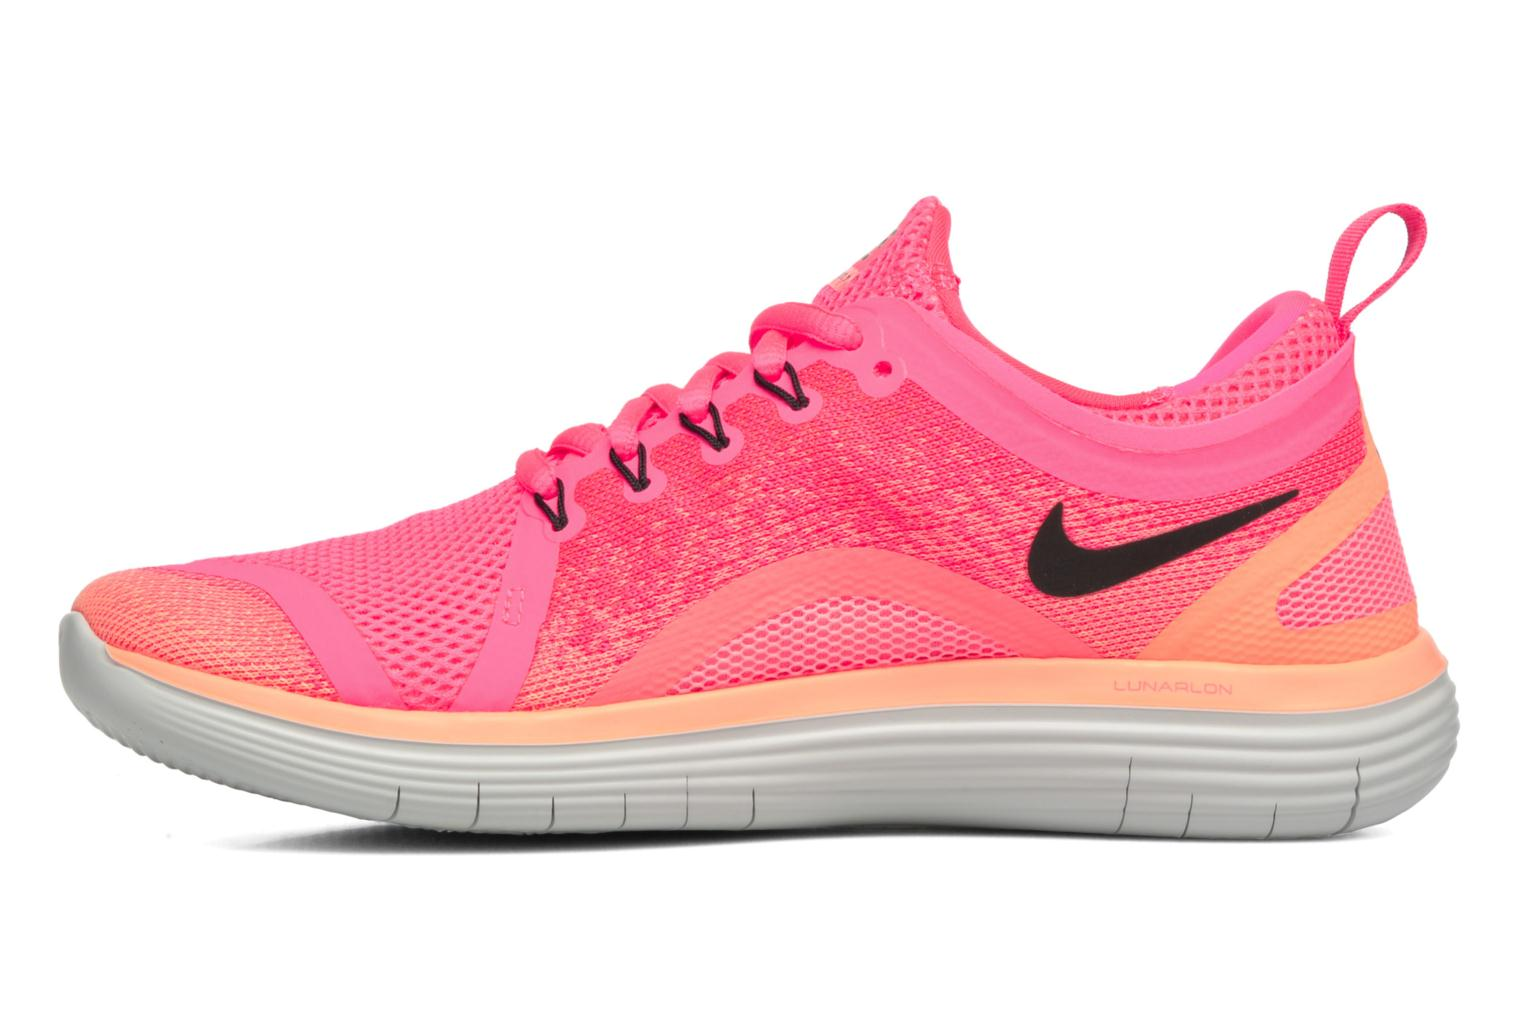 Wmns Nike Free Rn Distance 2 Racer Pink/Black-Lava Glow-Hot Punch